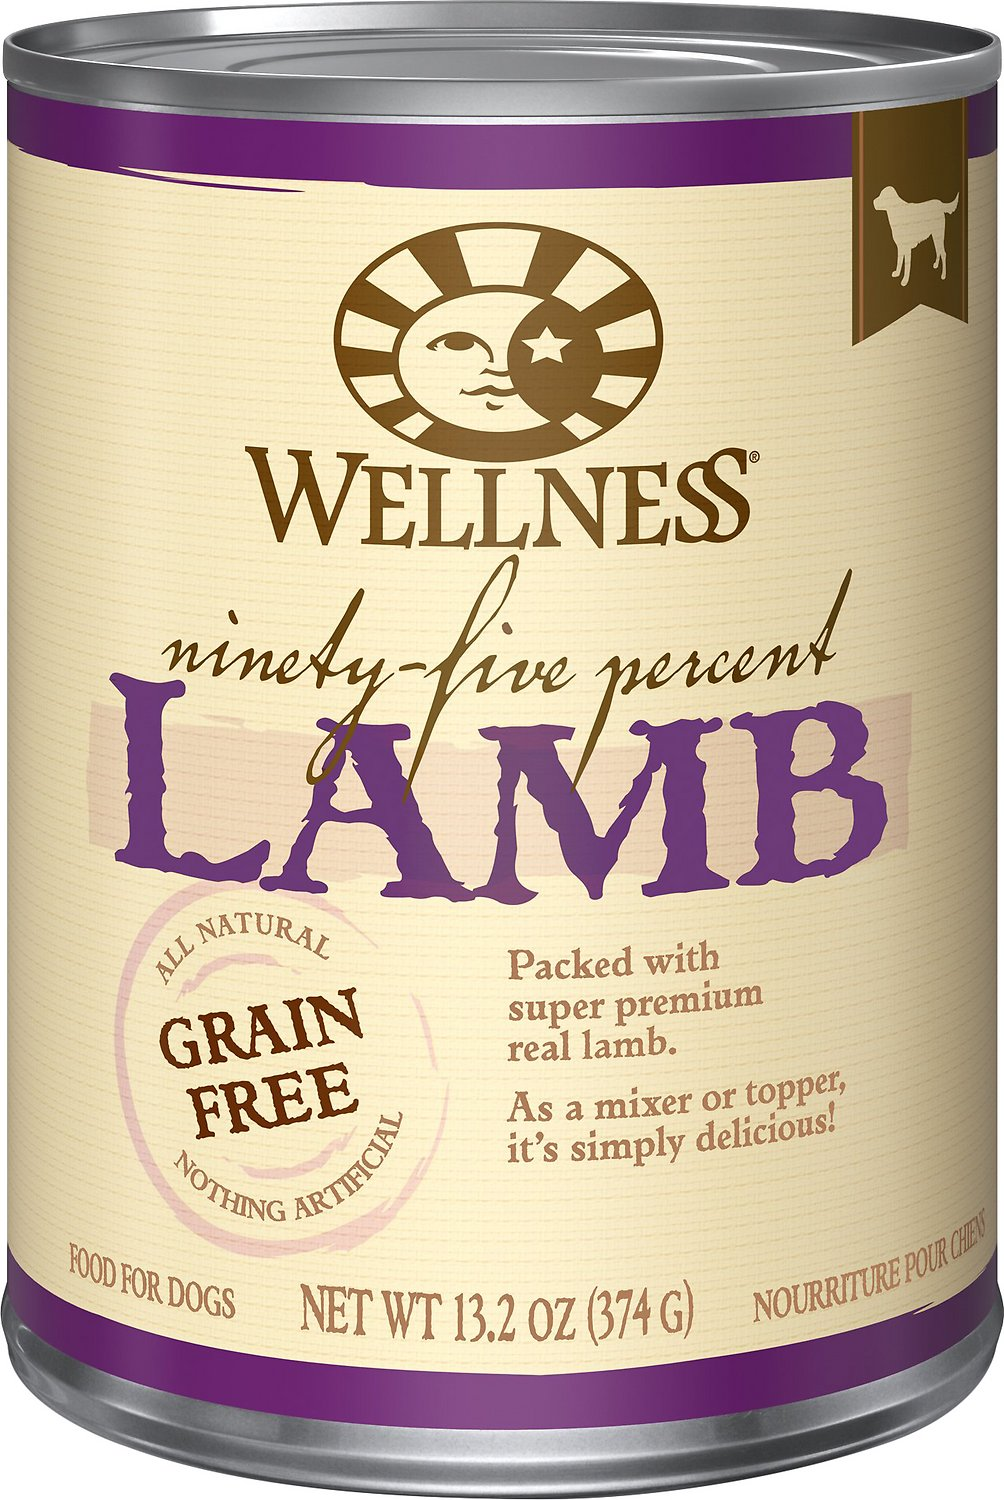 Wellness 95% Lamb Grain-Free Canned Dog Food, 13.2-oz